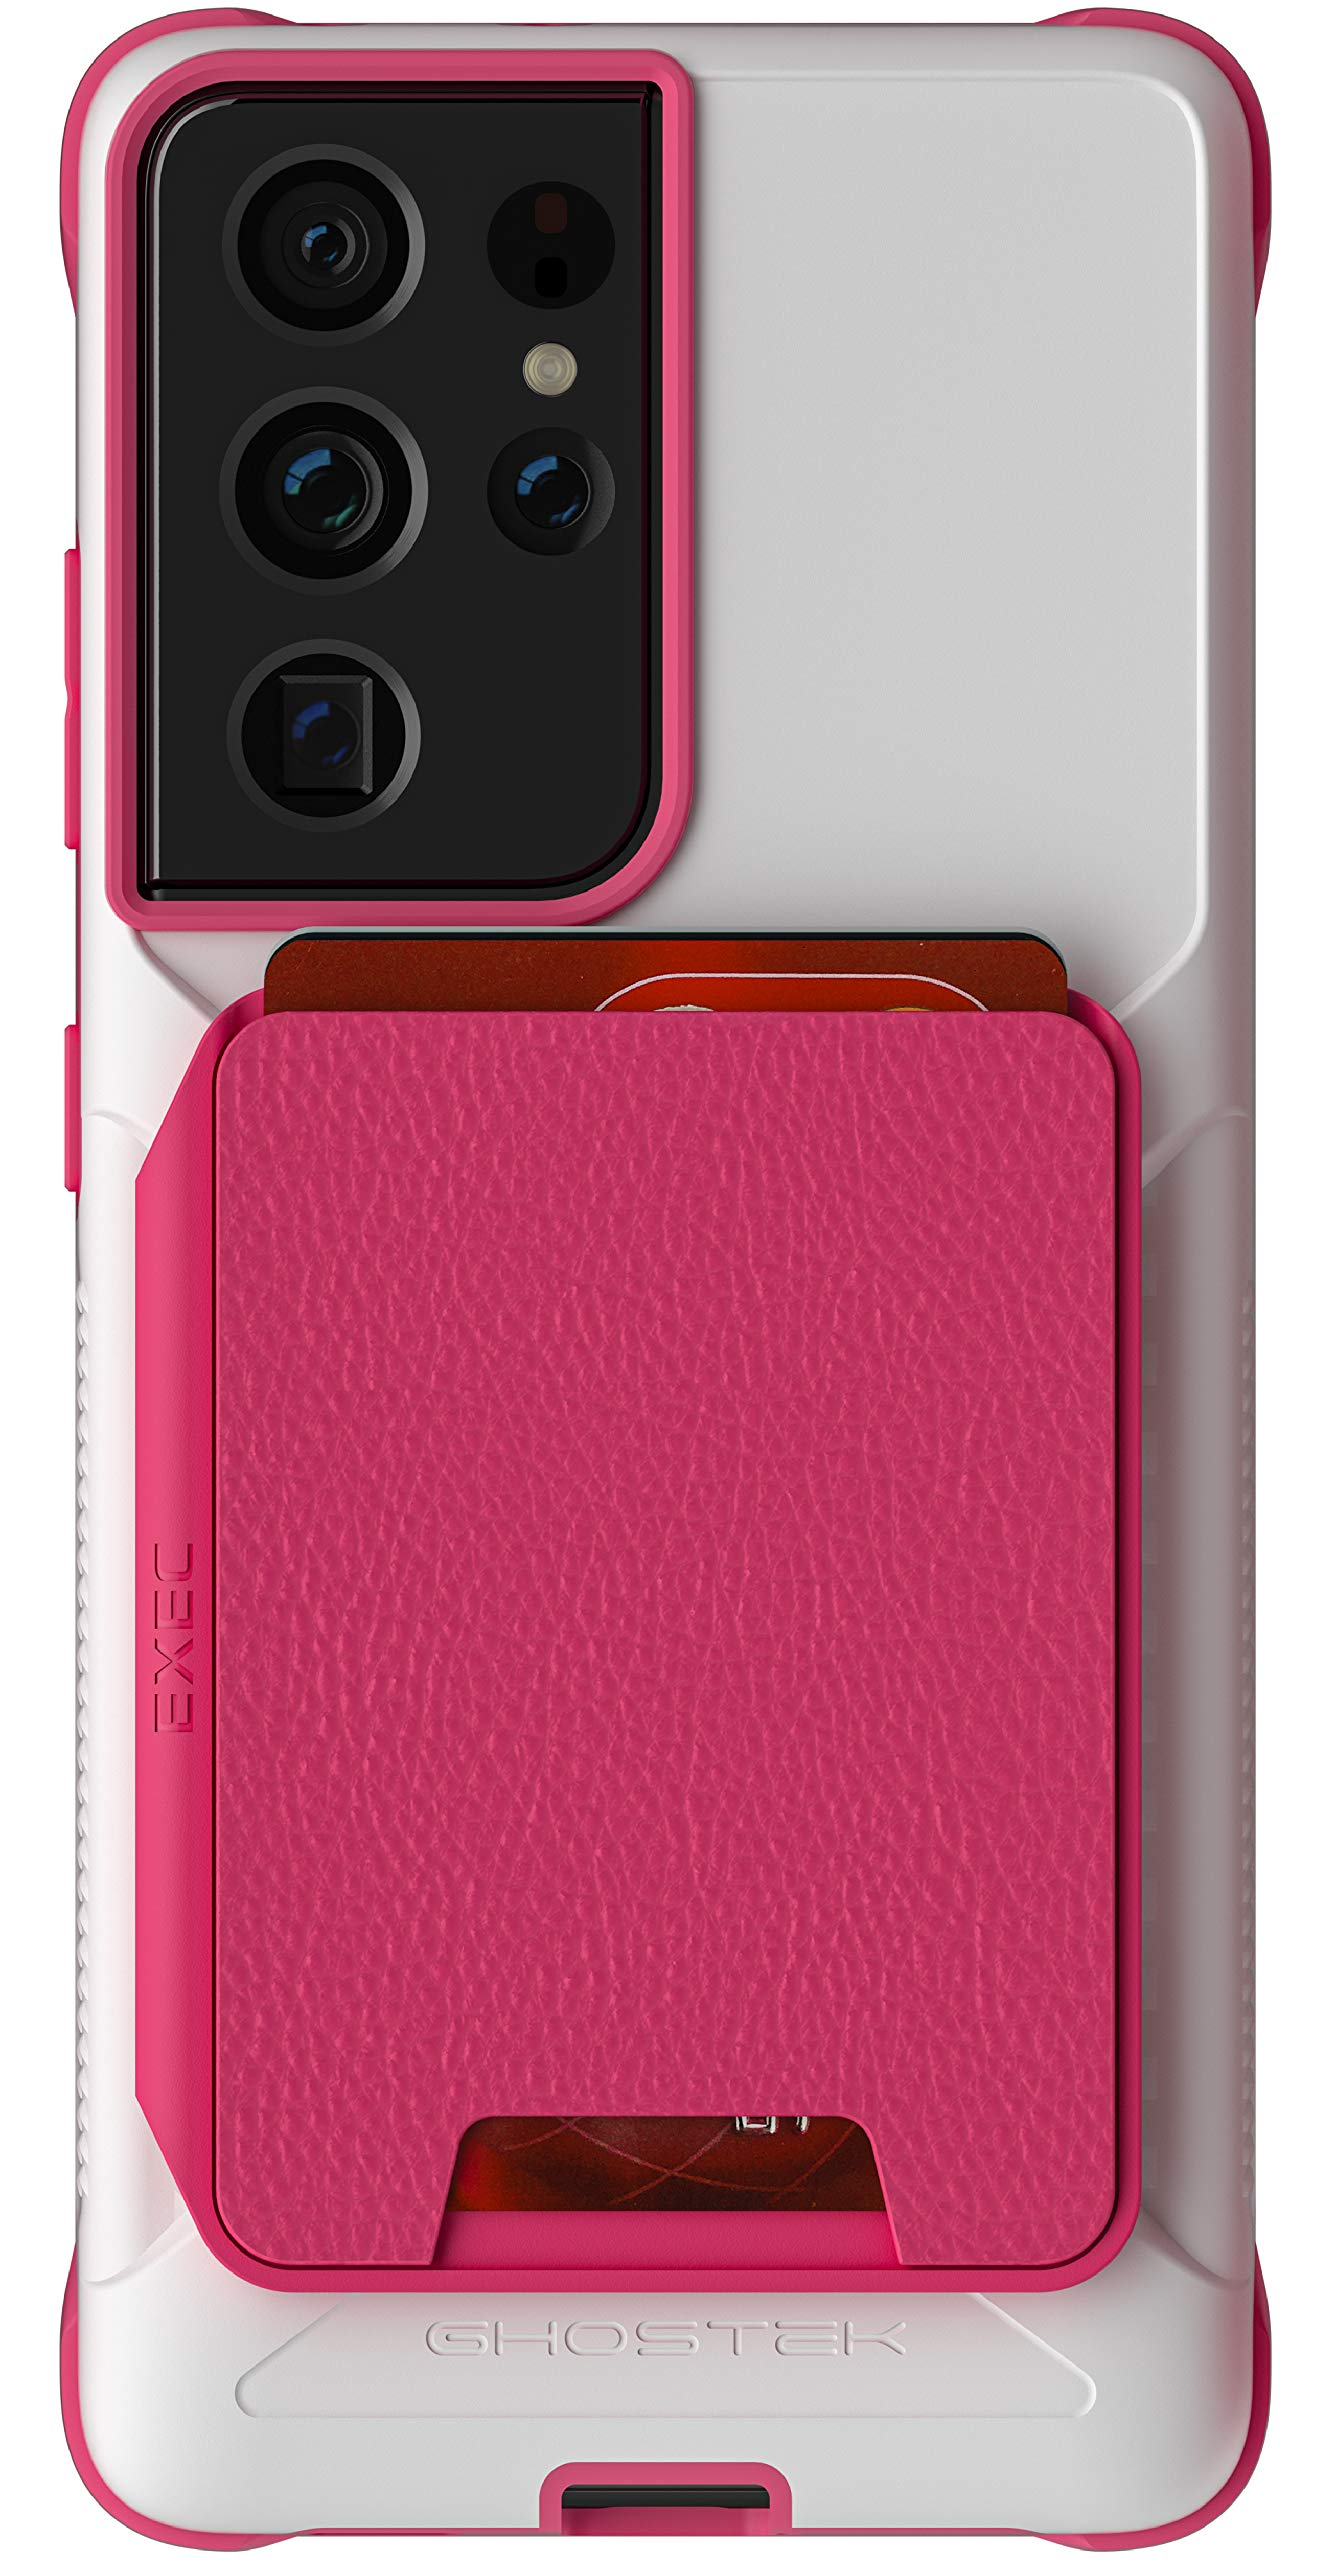 Ghostek Exec Galaxy S21+ Wallet Case for Women with Pink Leather Card Holder Cover Built-In Magnet for Magnetic Car Auto Air Vent Mounts Phone Holders 2021 Galaxy S21 Plus 5G (6.7 Inch) (Phantom Pink)